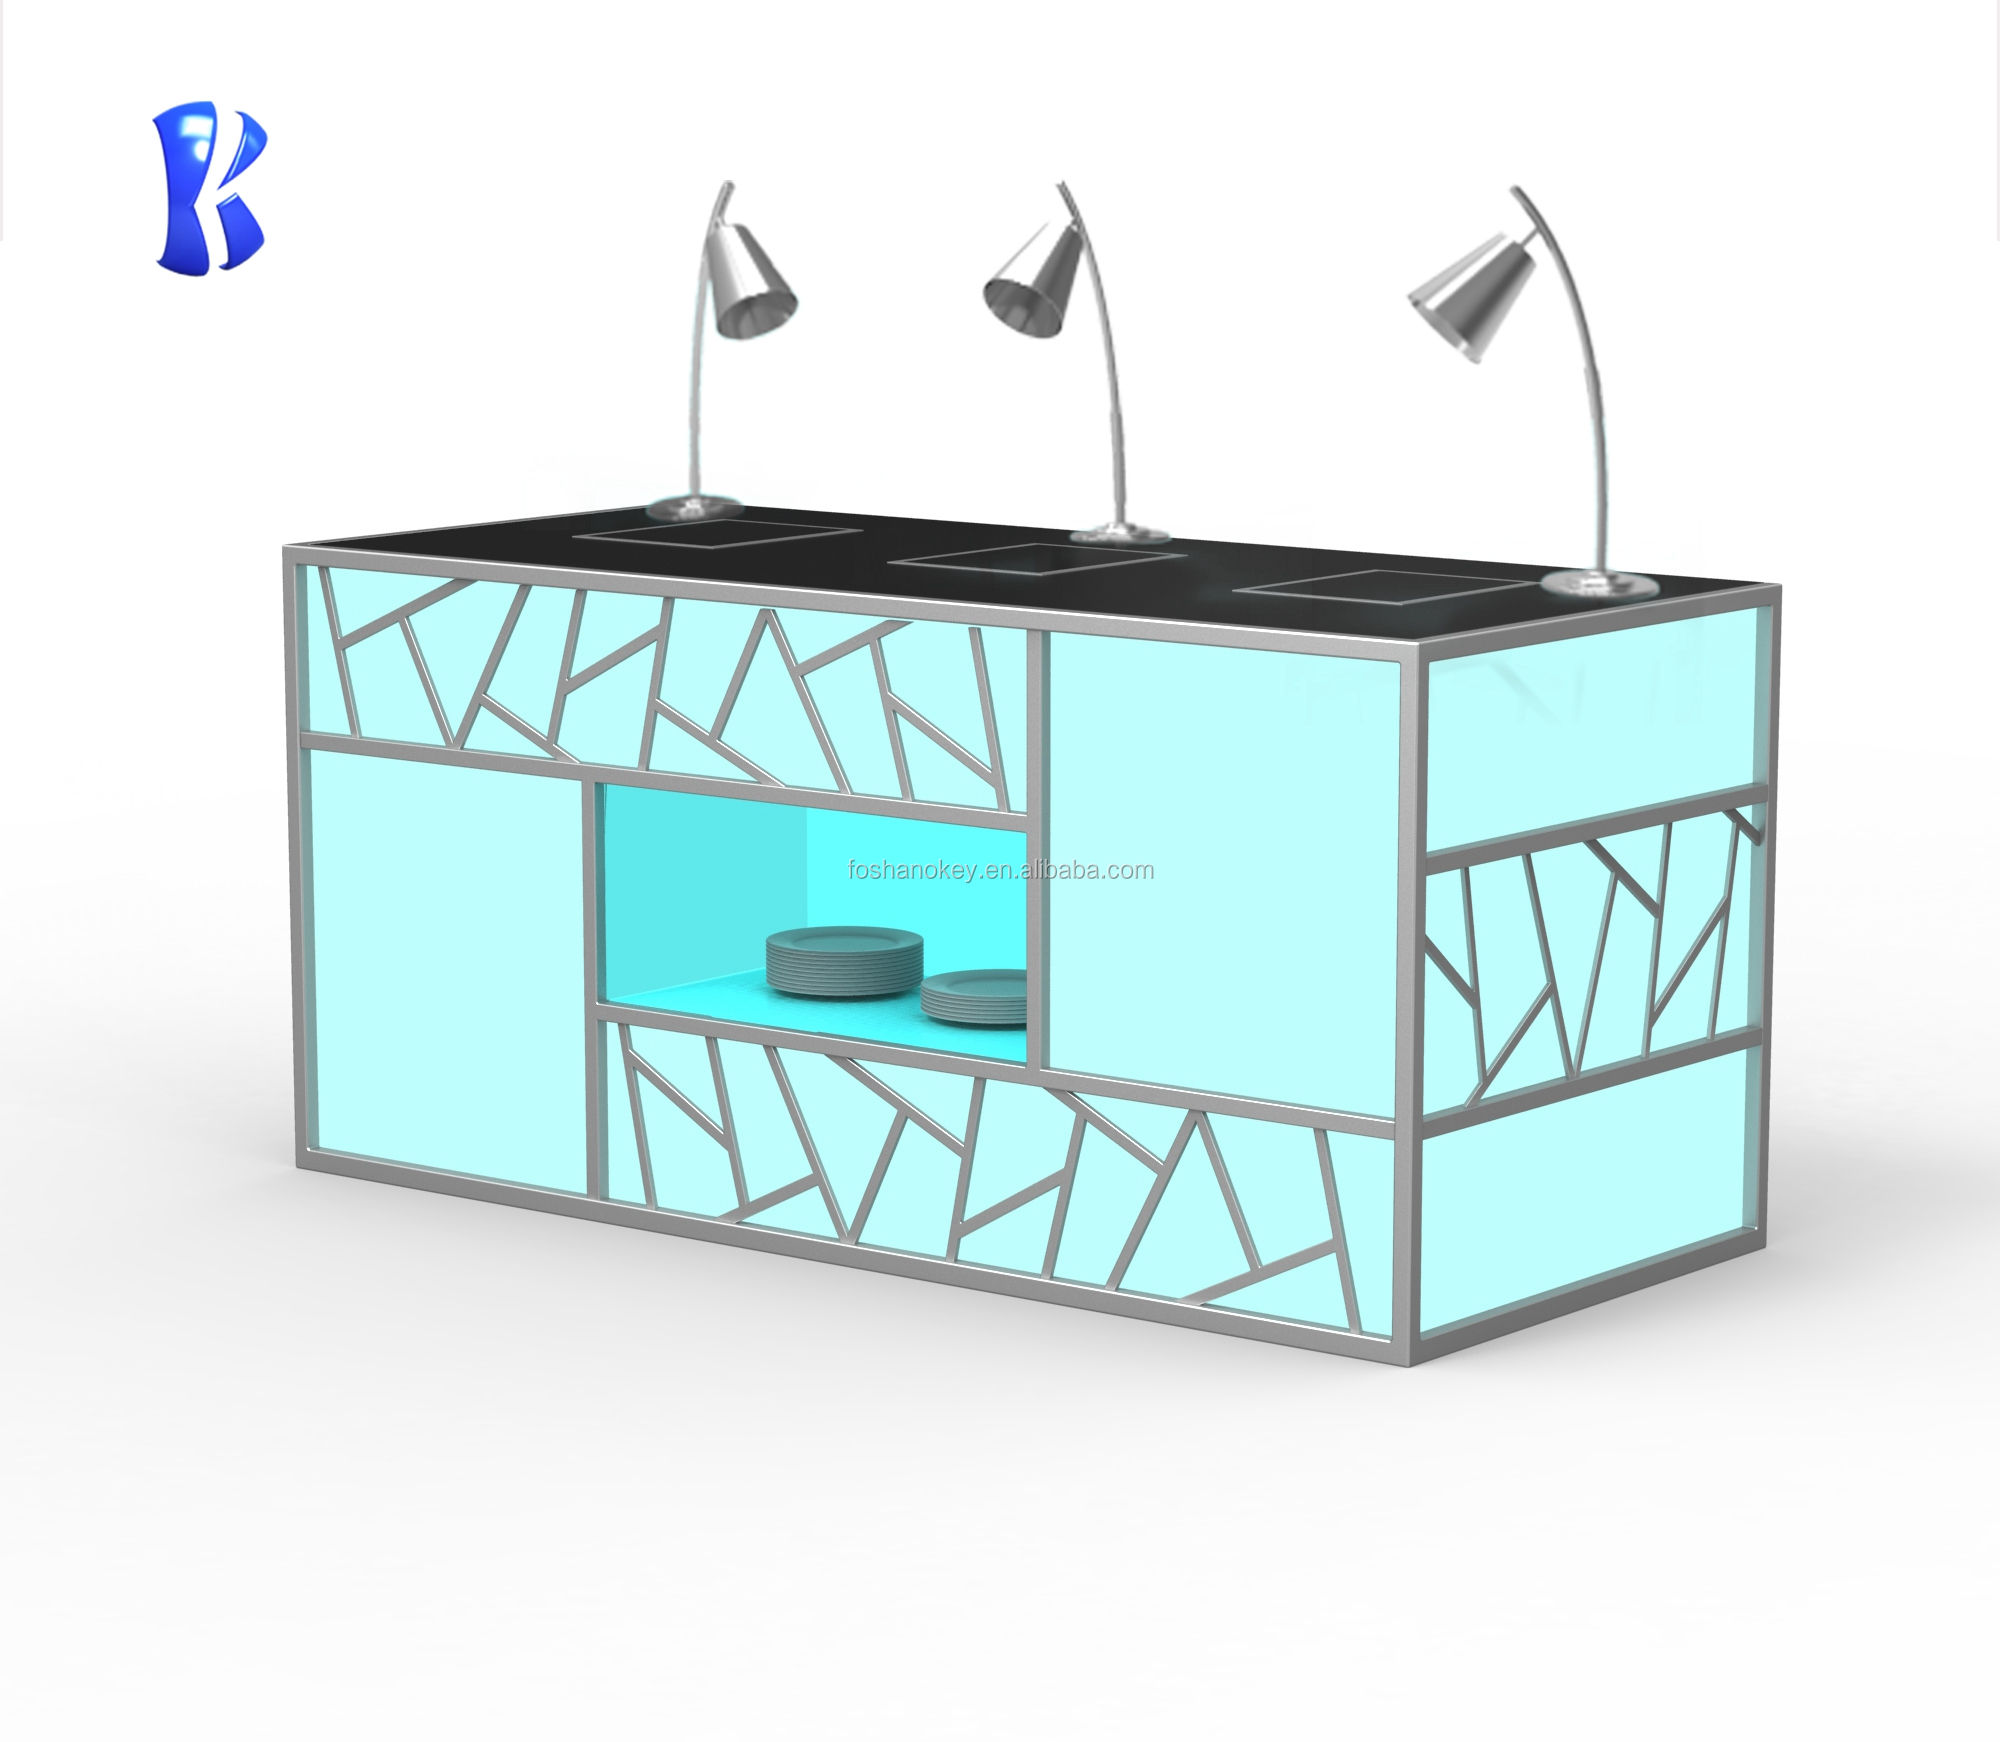 OKEY restaurant supplies kitchen equipment Colorful led light Induction buffet chafing dish food warmer station